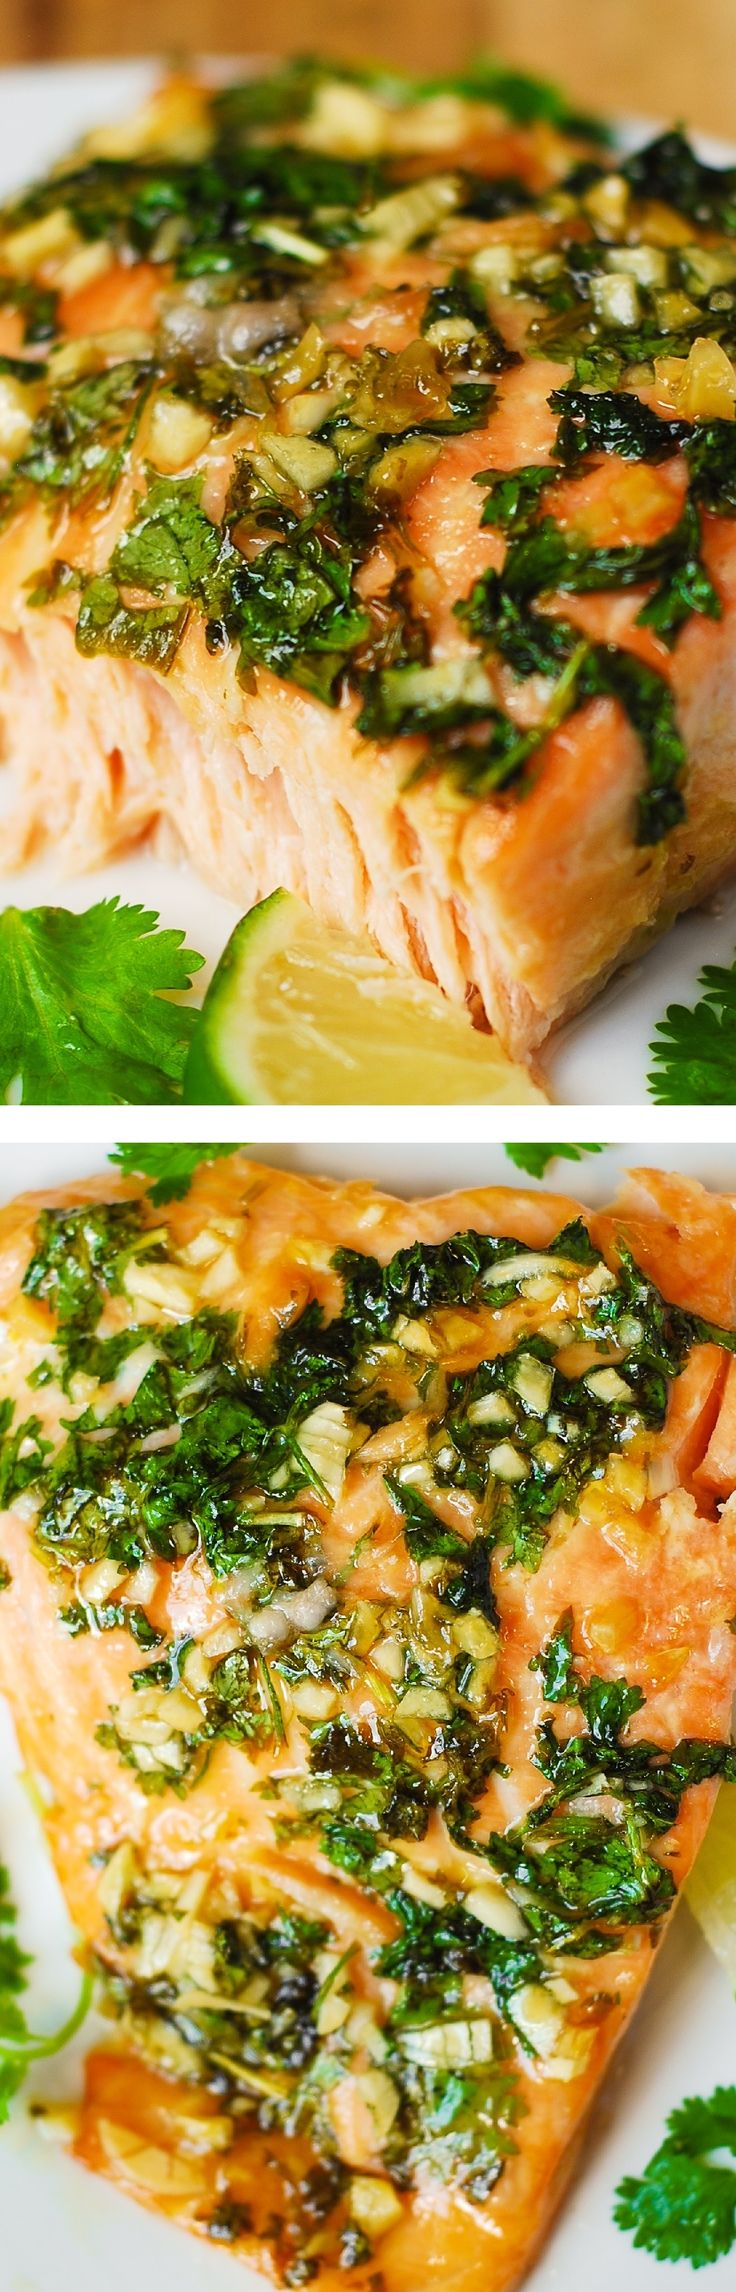 Cilantro-Lime Honey Garlic Salmon by juliasalbum: Baked in foil – easy, healthy recipe that takes 30 minutes from start to finish. #Salmon #Cilantro #Lime #Honey #Garlic #Easy #Oven_Baked #Healthy